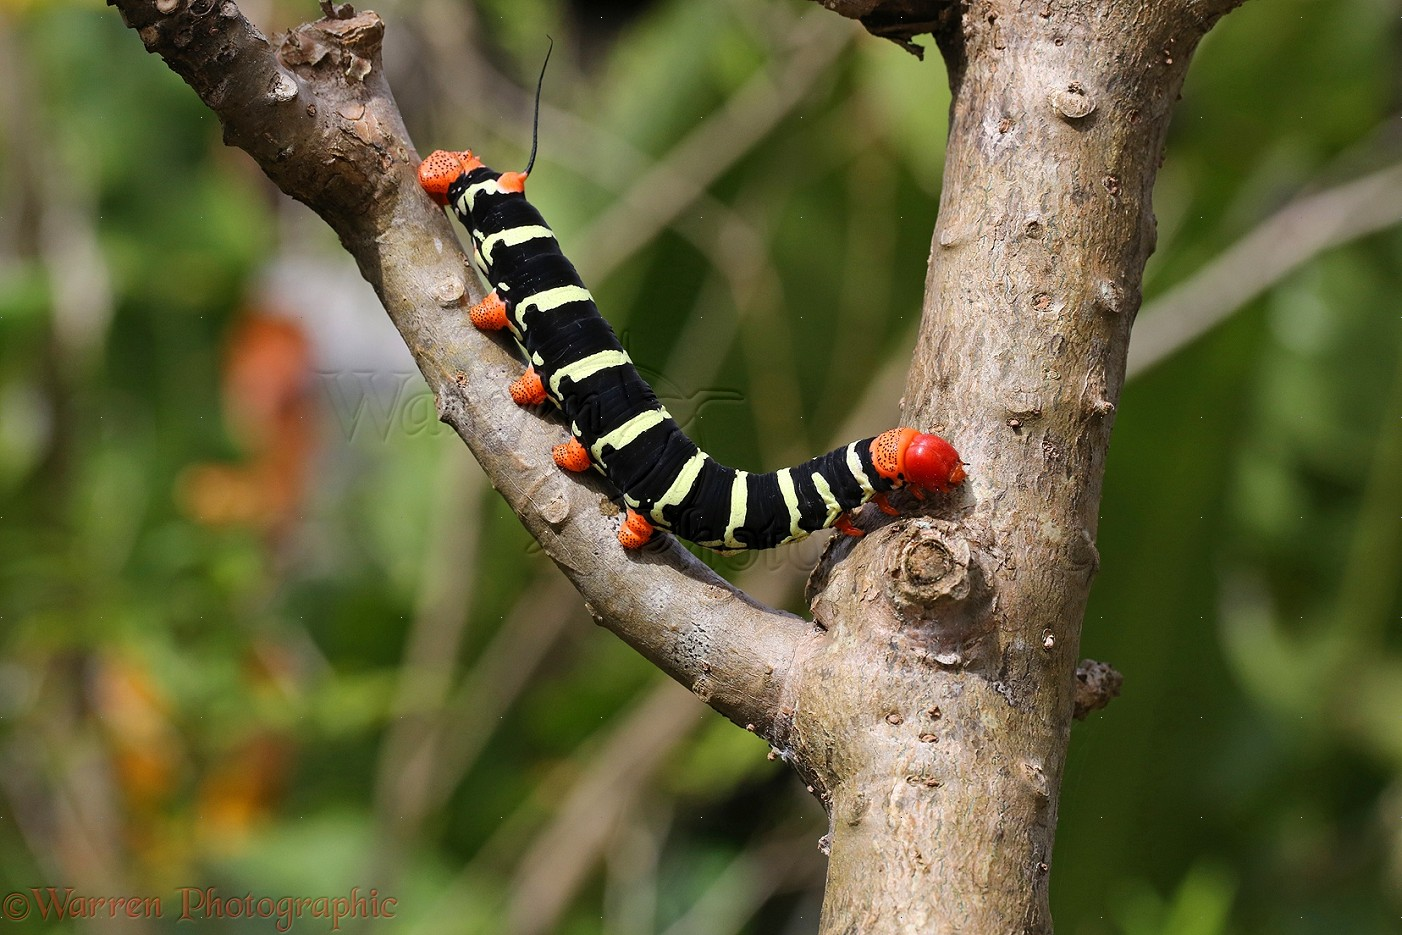 Gray Caterpillars That Are Big: Giant Grey Sphinx Moth Caterpillar Or Frangipani Worm